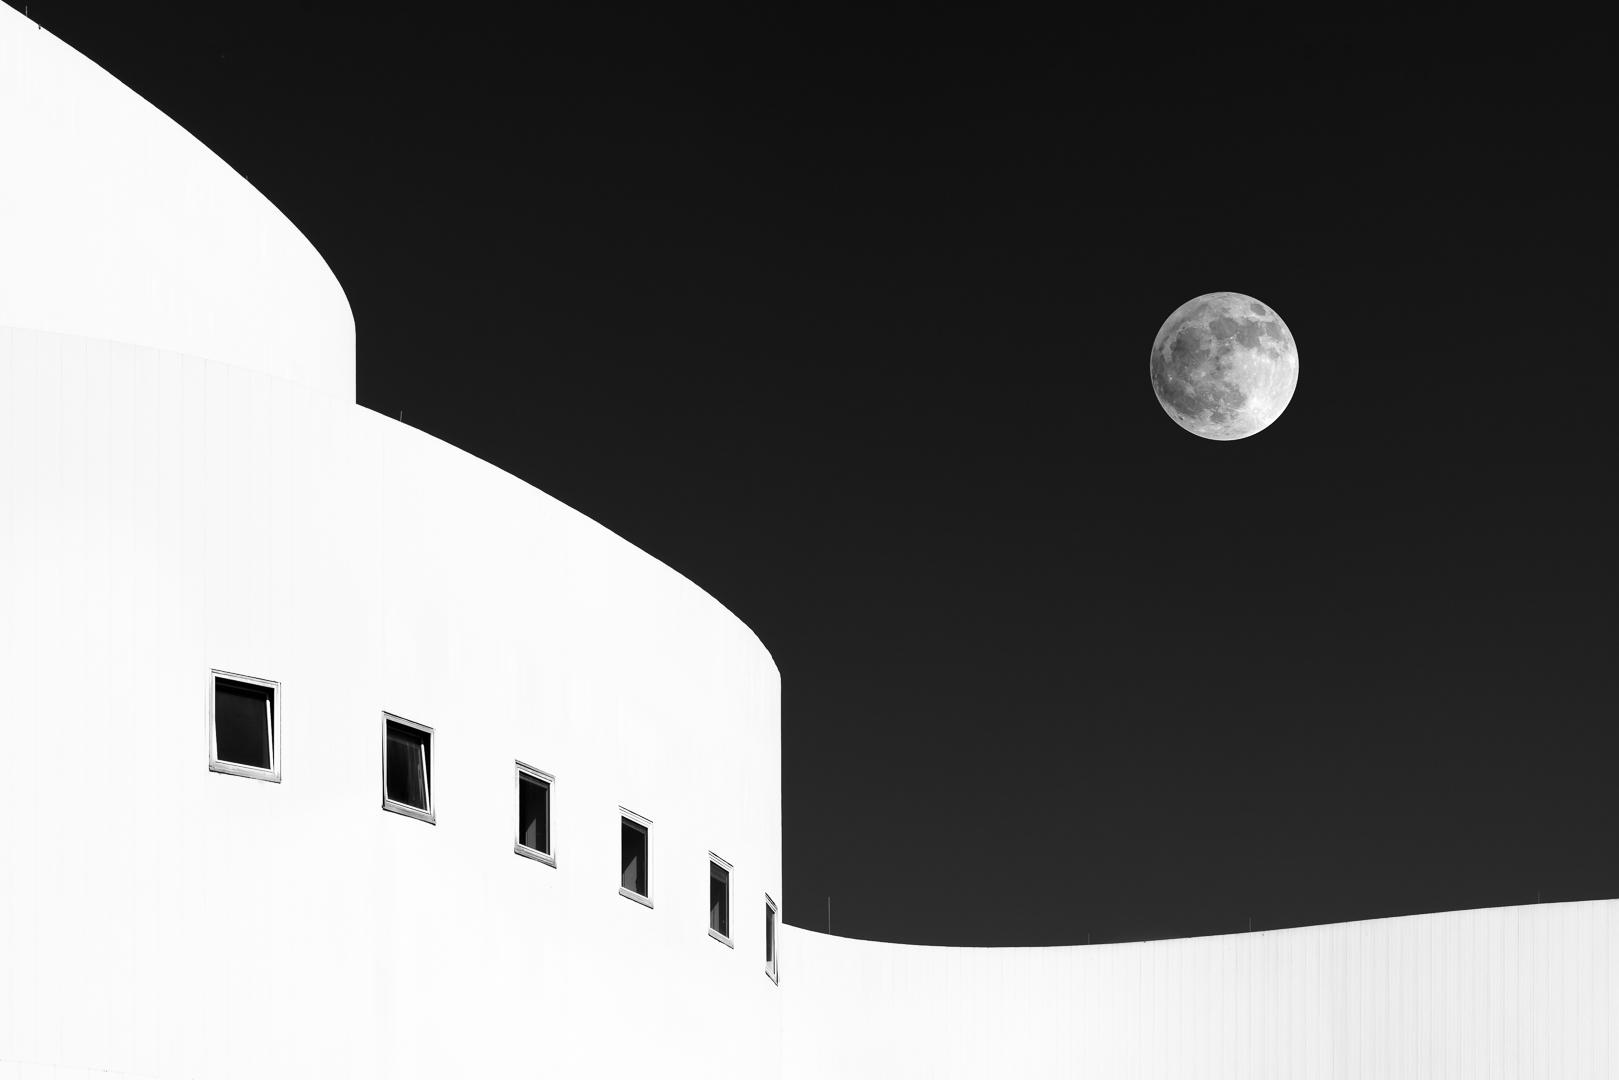 Six Windows and a Moon